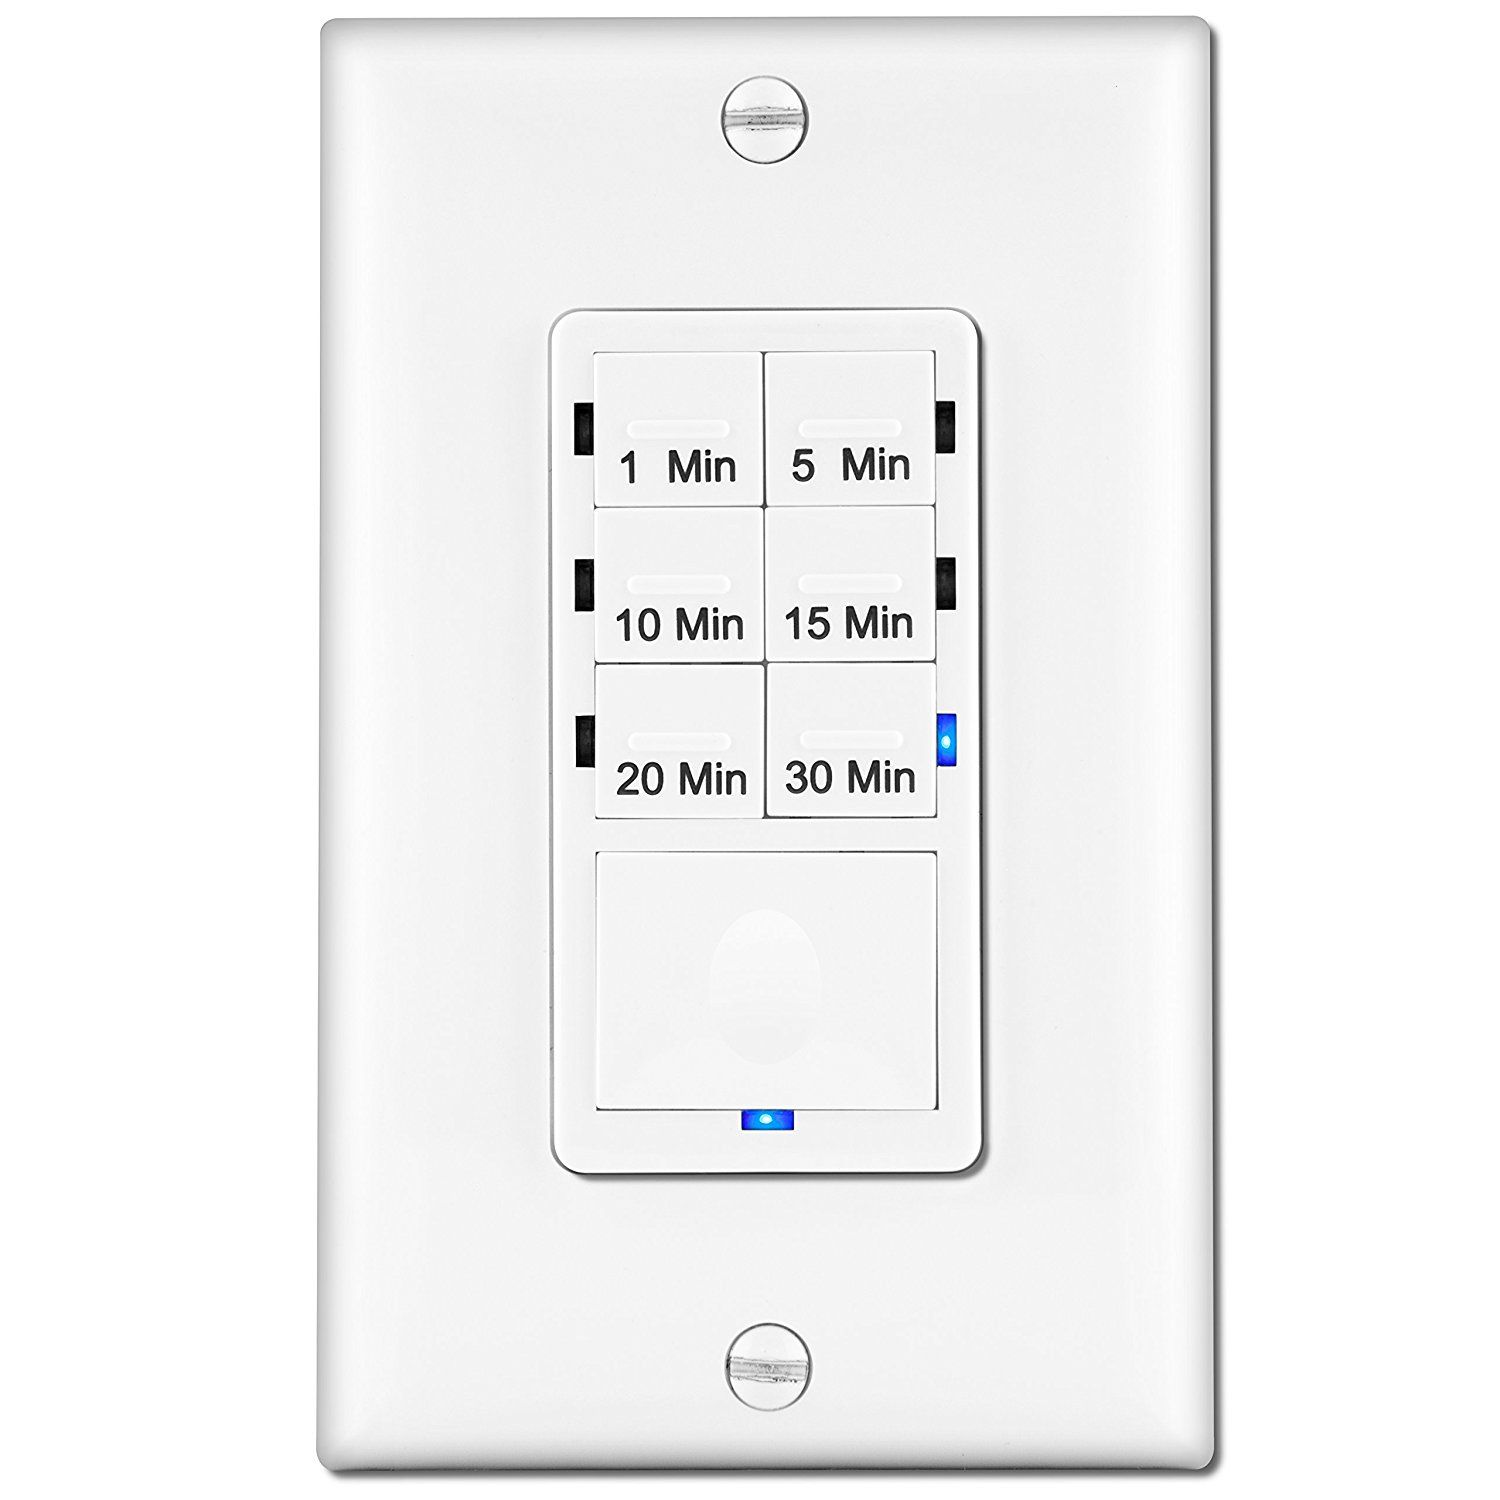 timer to install for bathroom vent fans enerlites het06a 1 5 10 15 Bathroom Old-Style Fan enerlites in wall countdown timer switch preset maximum 30 minutes delay standard decorative wall plate included